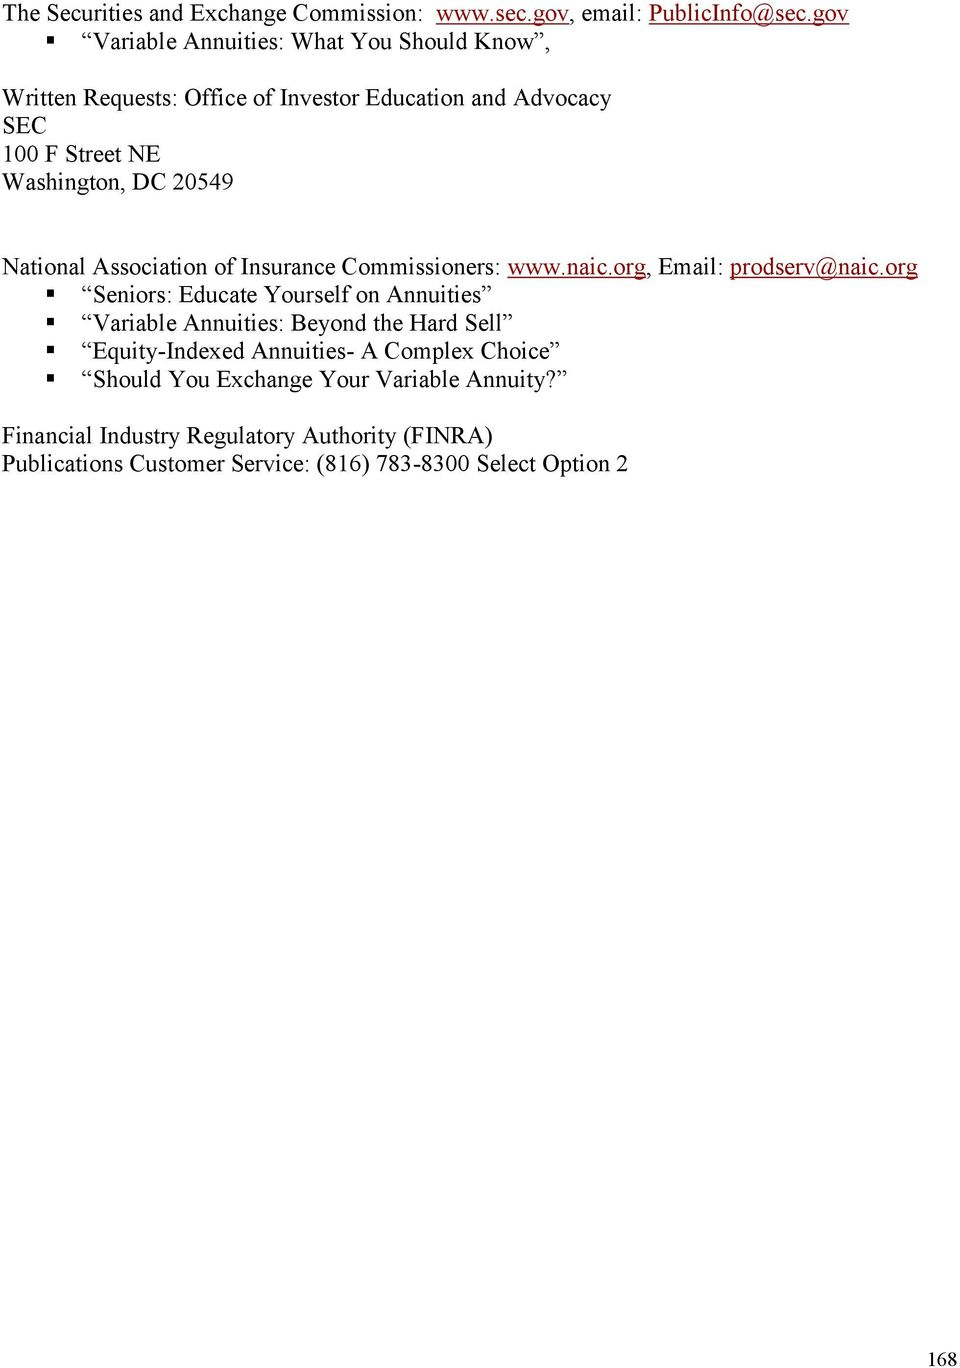 National Association of Insurance Commissioners: www.naic.org, Email: prodserv@naic.